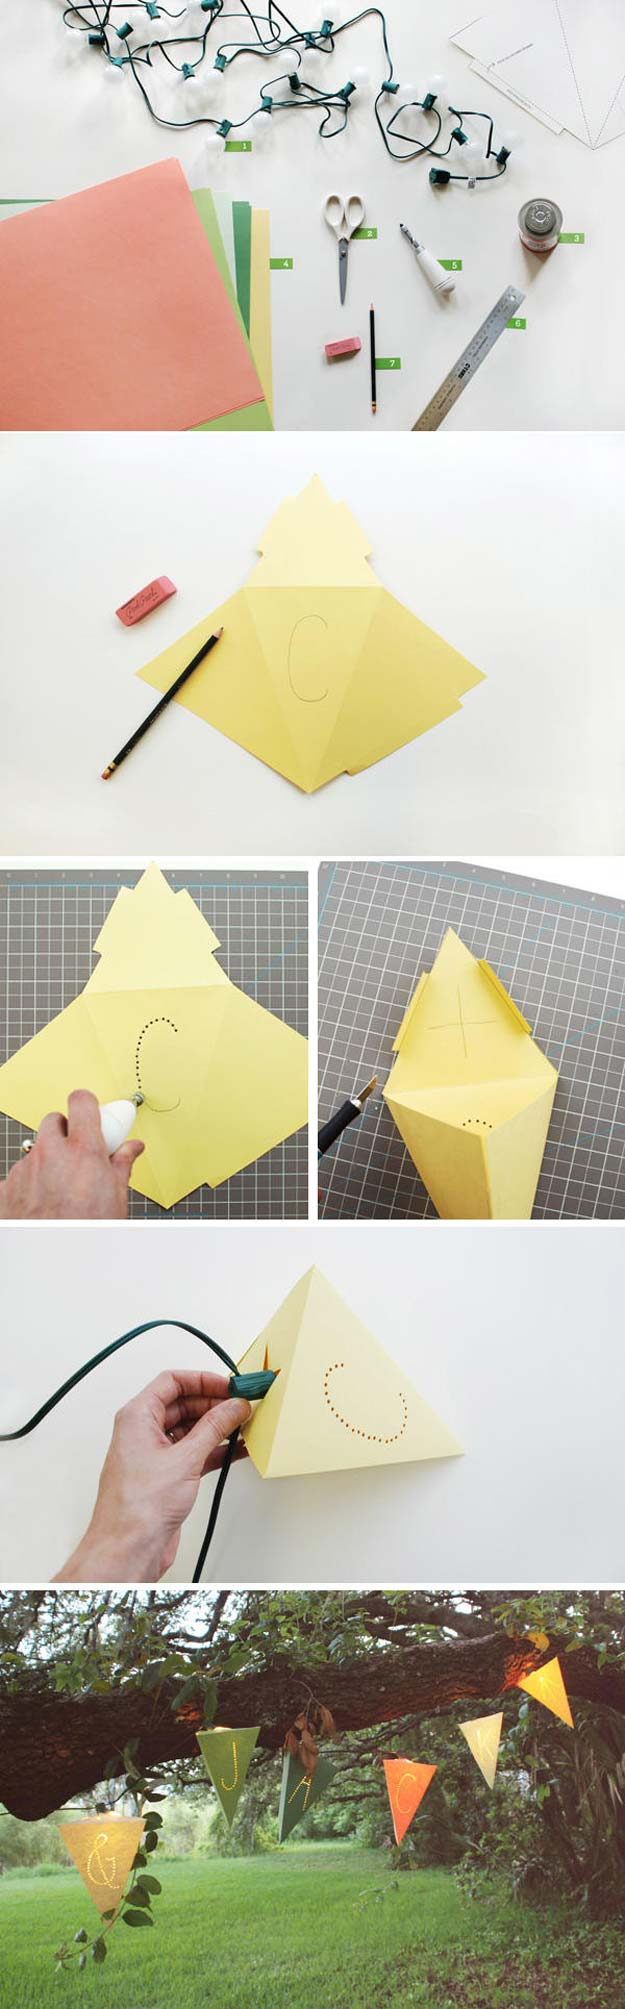 Cool Ways To Use Christmas Lights - DIY Lighted Paper Pennant Garland - Best Easy DIY Ideas for String Lights for Room Decoration, Home Decor and Creative DIY Bedroom Lighting - Creative Christmas Light Tutorials with Step by Step Instructions - Creative Crafts and DIY Projects for Teens, Teenagers and Adults http://diyprojectsforteens.com/diy-projects-string-lights